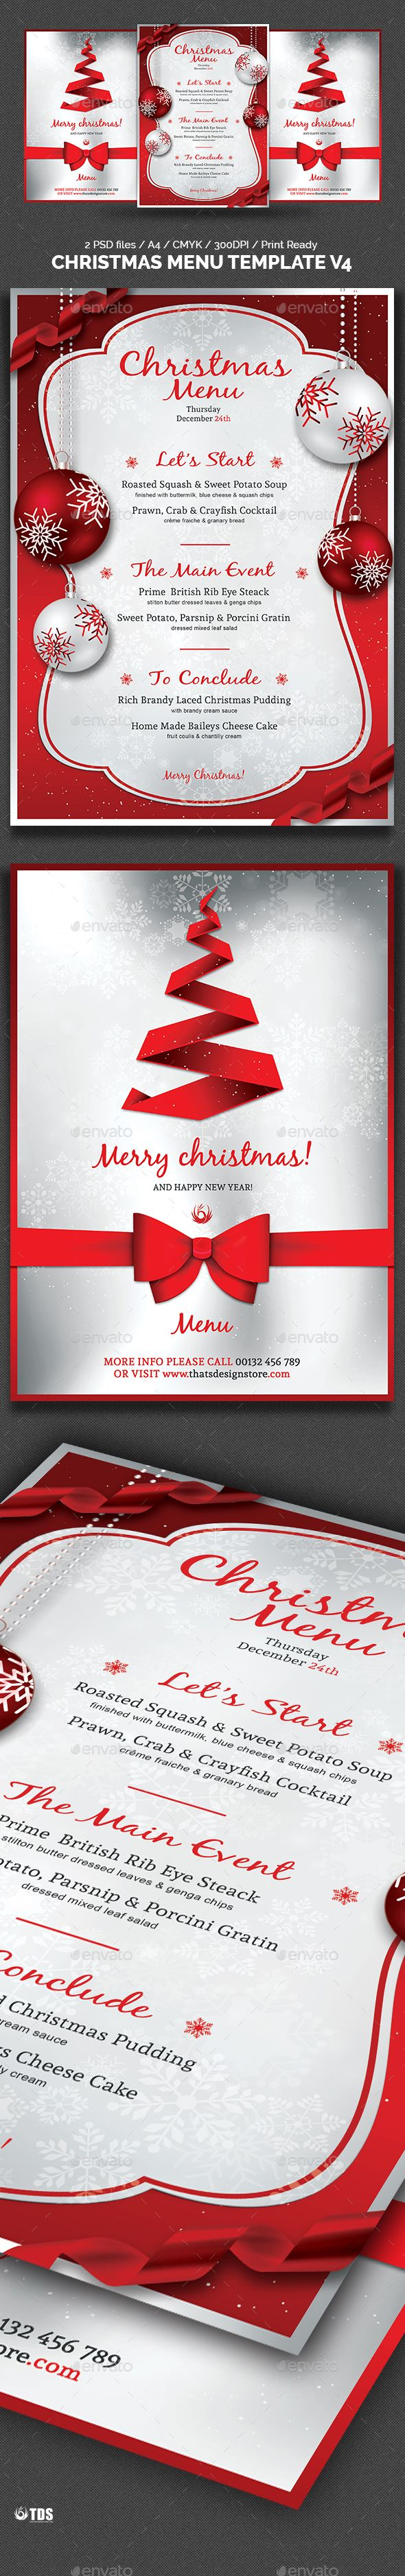 Christmas Menu Template V4 Pinterest Menu Templates Template